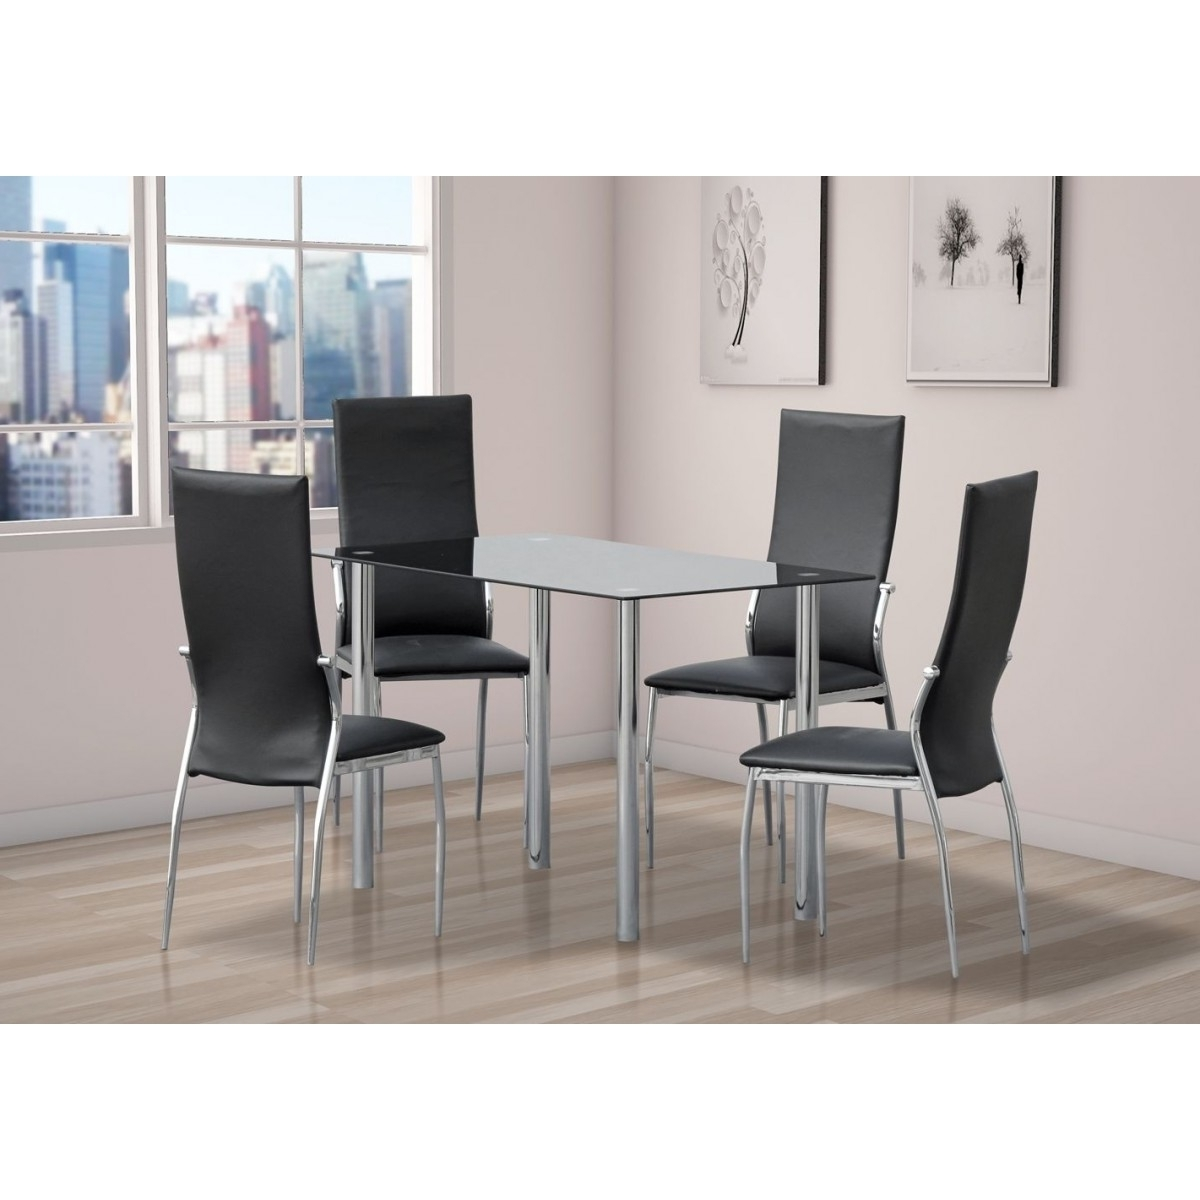 Glass Dining Table With 4 Or 6 Chairs – Home Done Inside Newest Glass Dining Tables 6 Chairs (View 22 of 25)